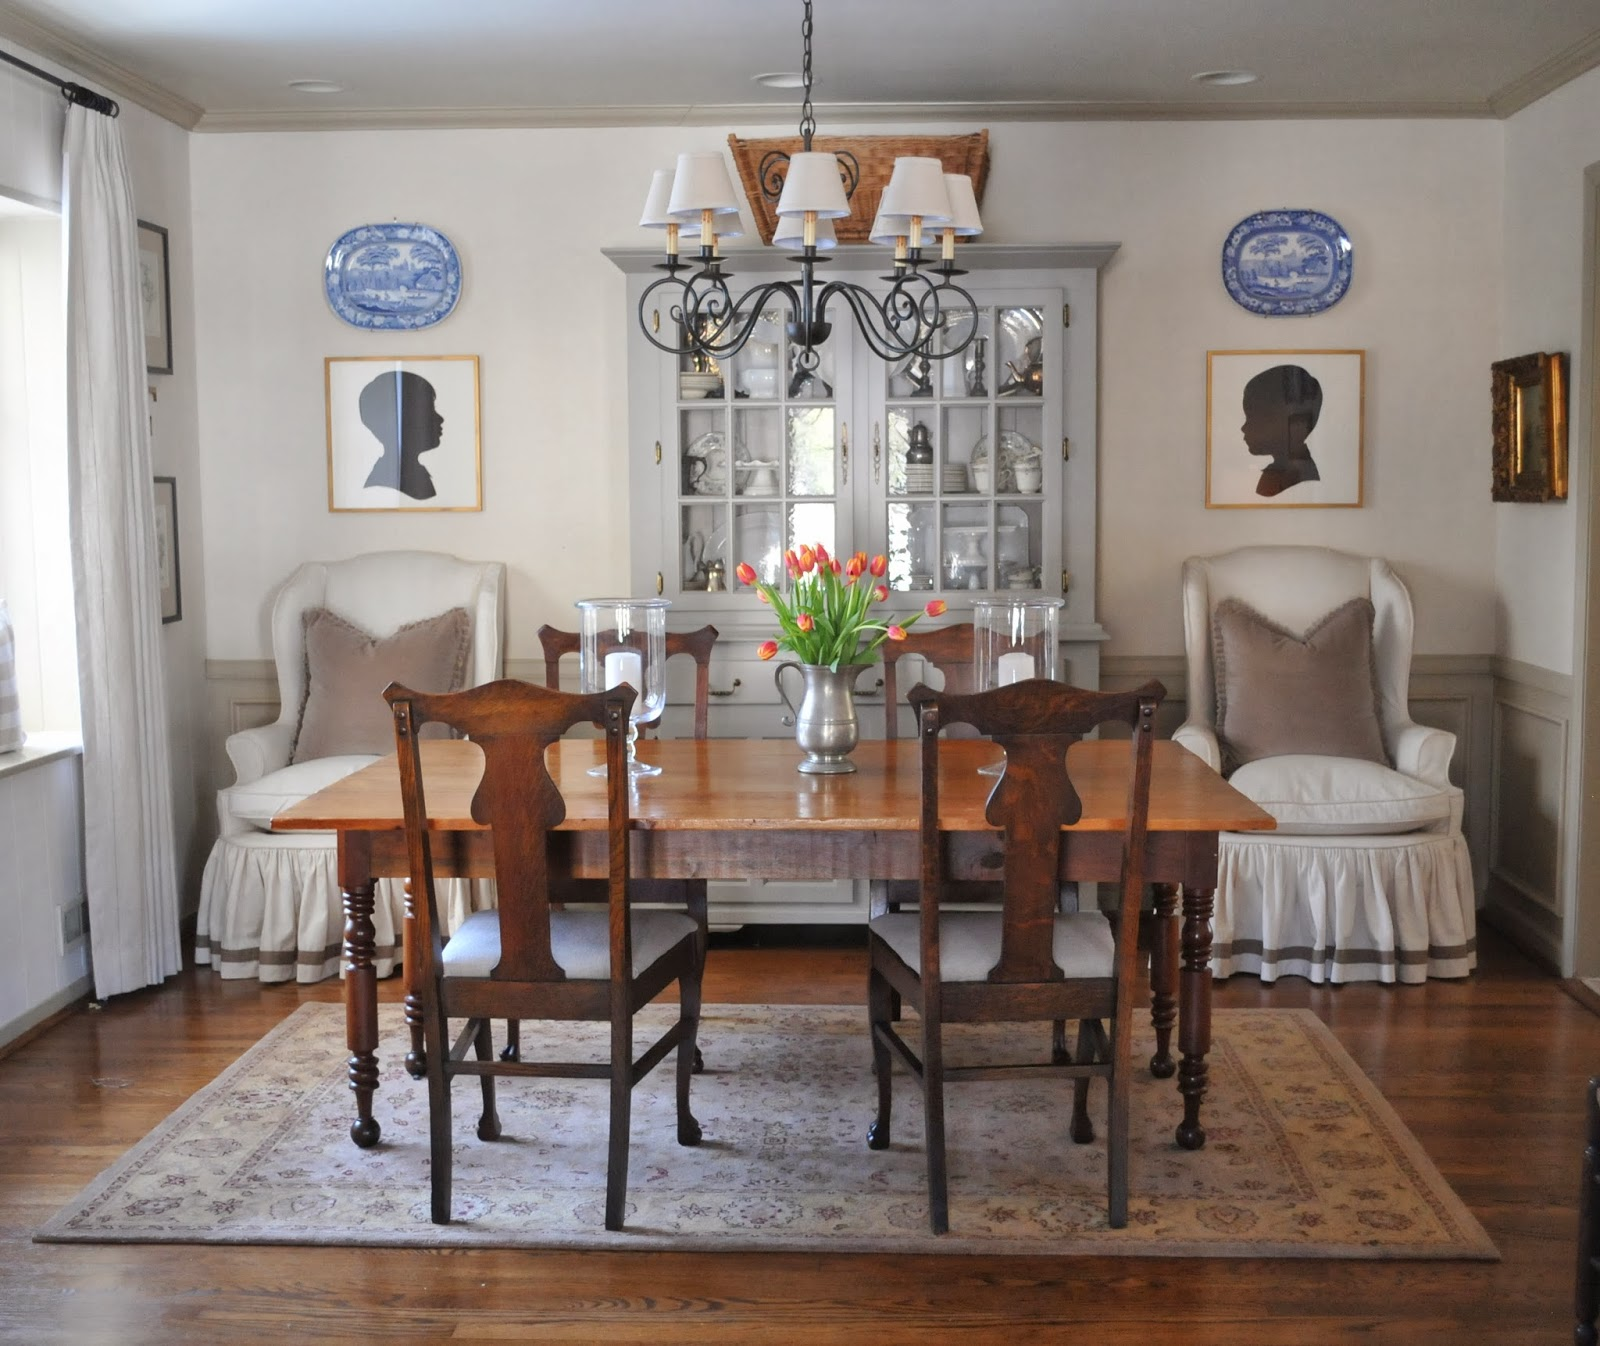 Sofa In Dining Room: NINE + SIXTEEN: Decorating Inspiration